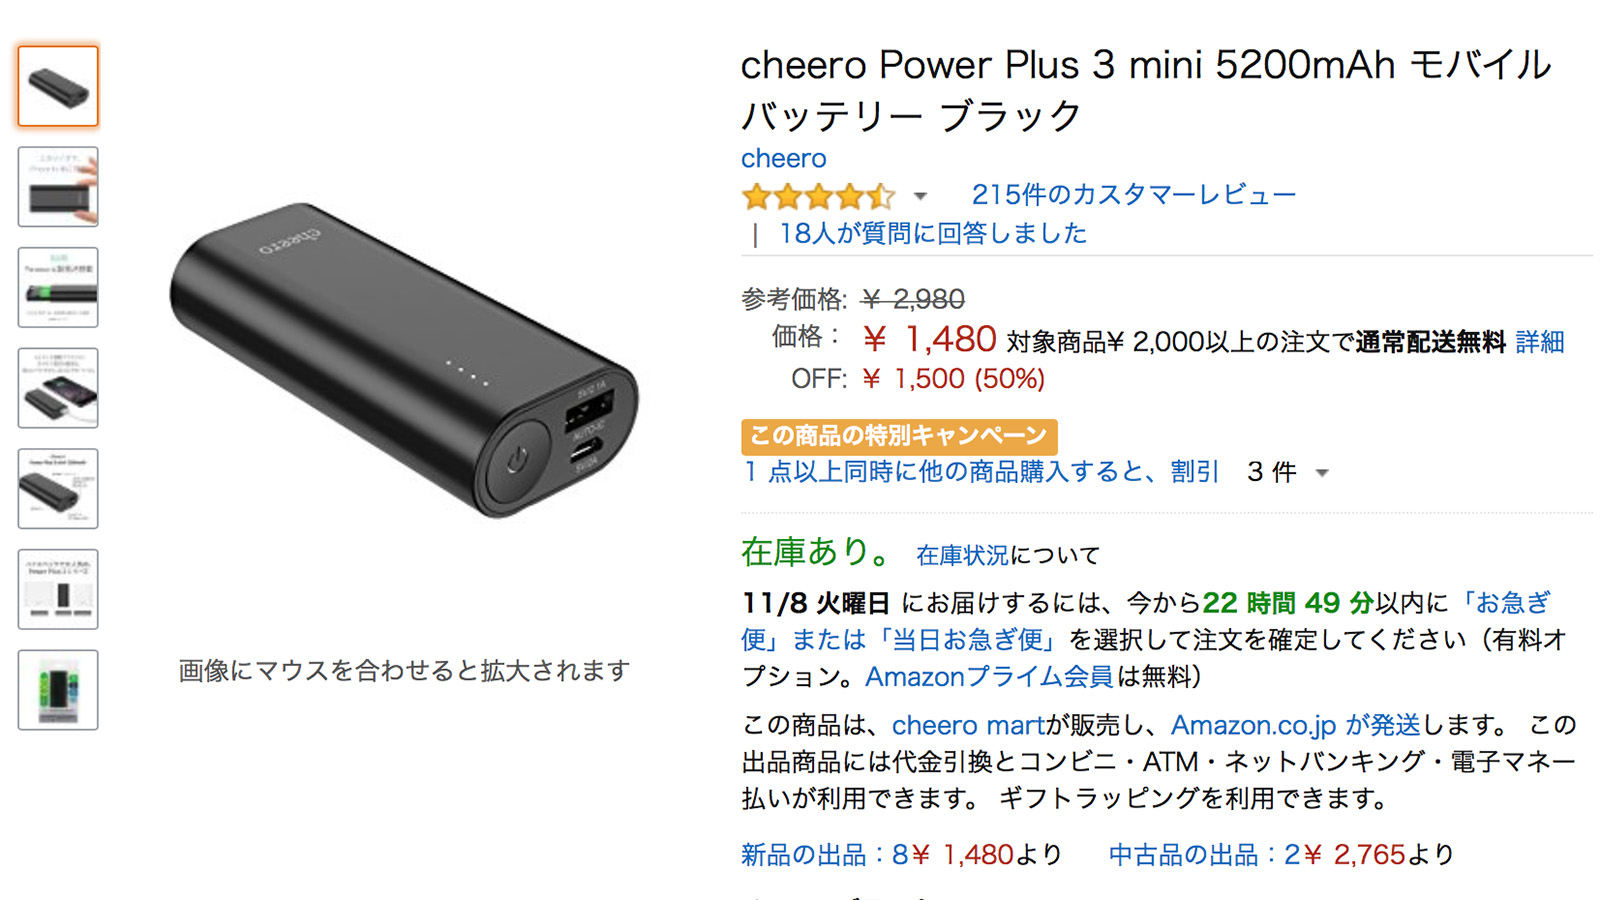 cheero Power Plus 3 mini 5200mAh 価格